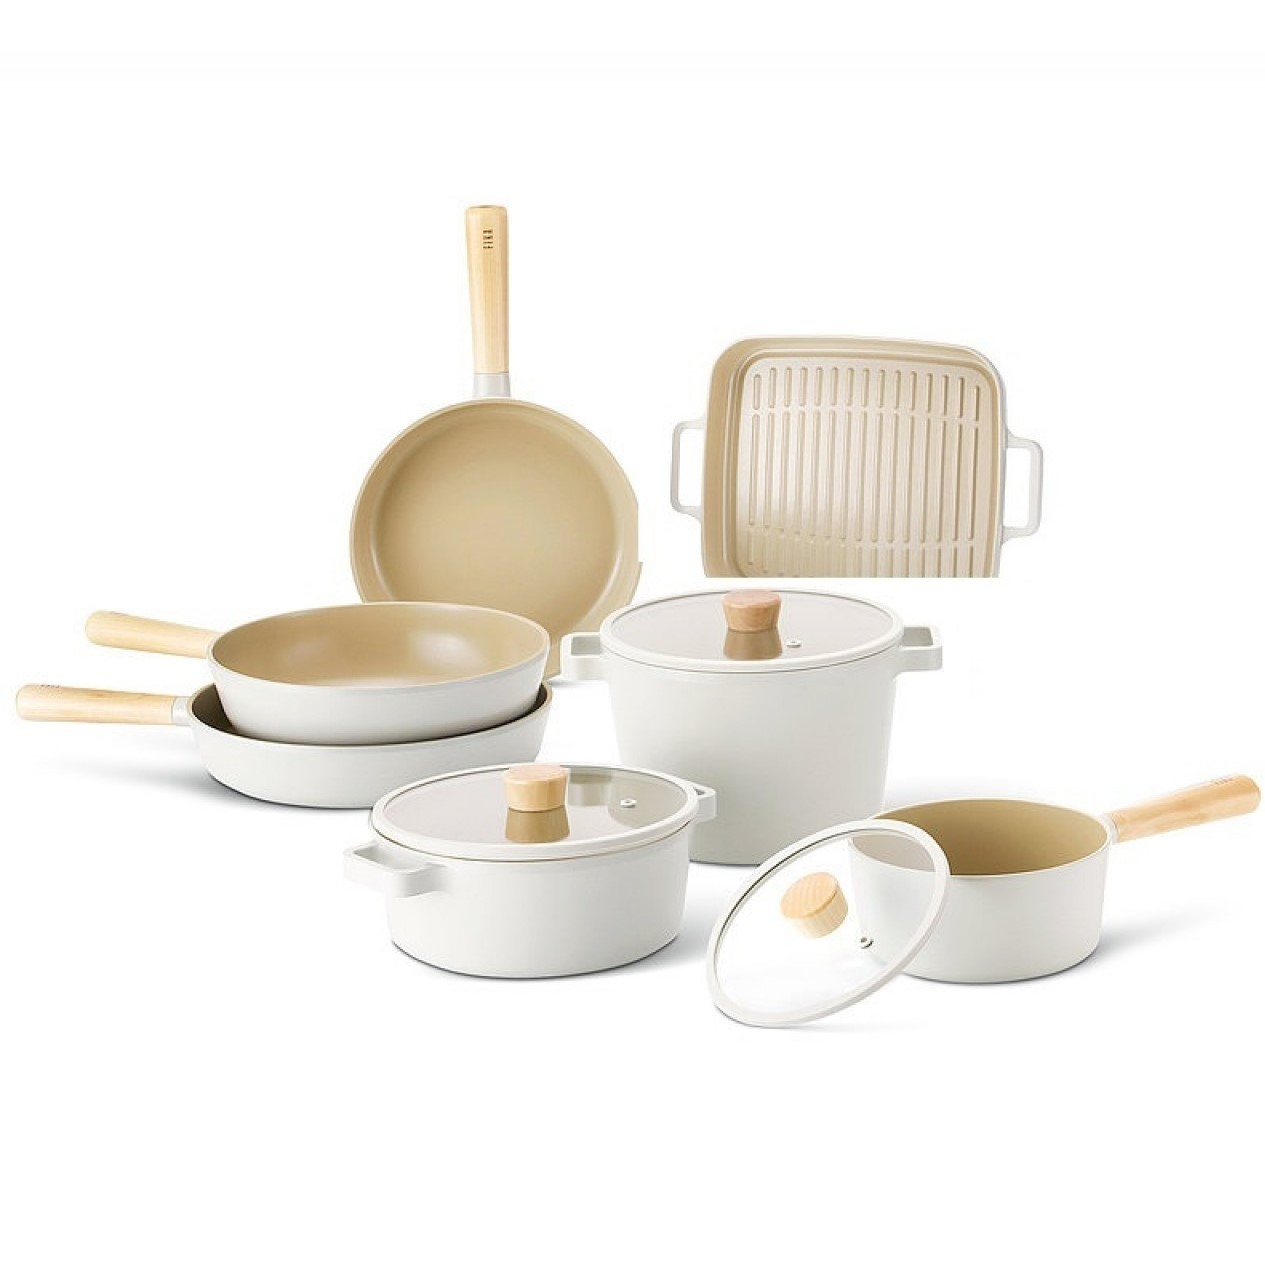 Neoflam Fika Induction Safe Cookware Set